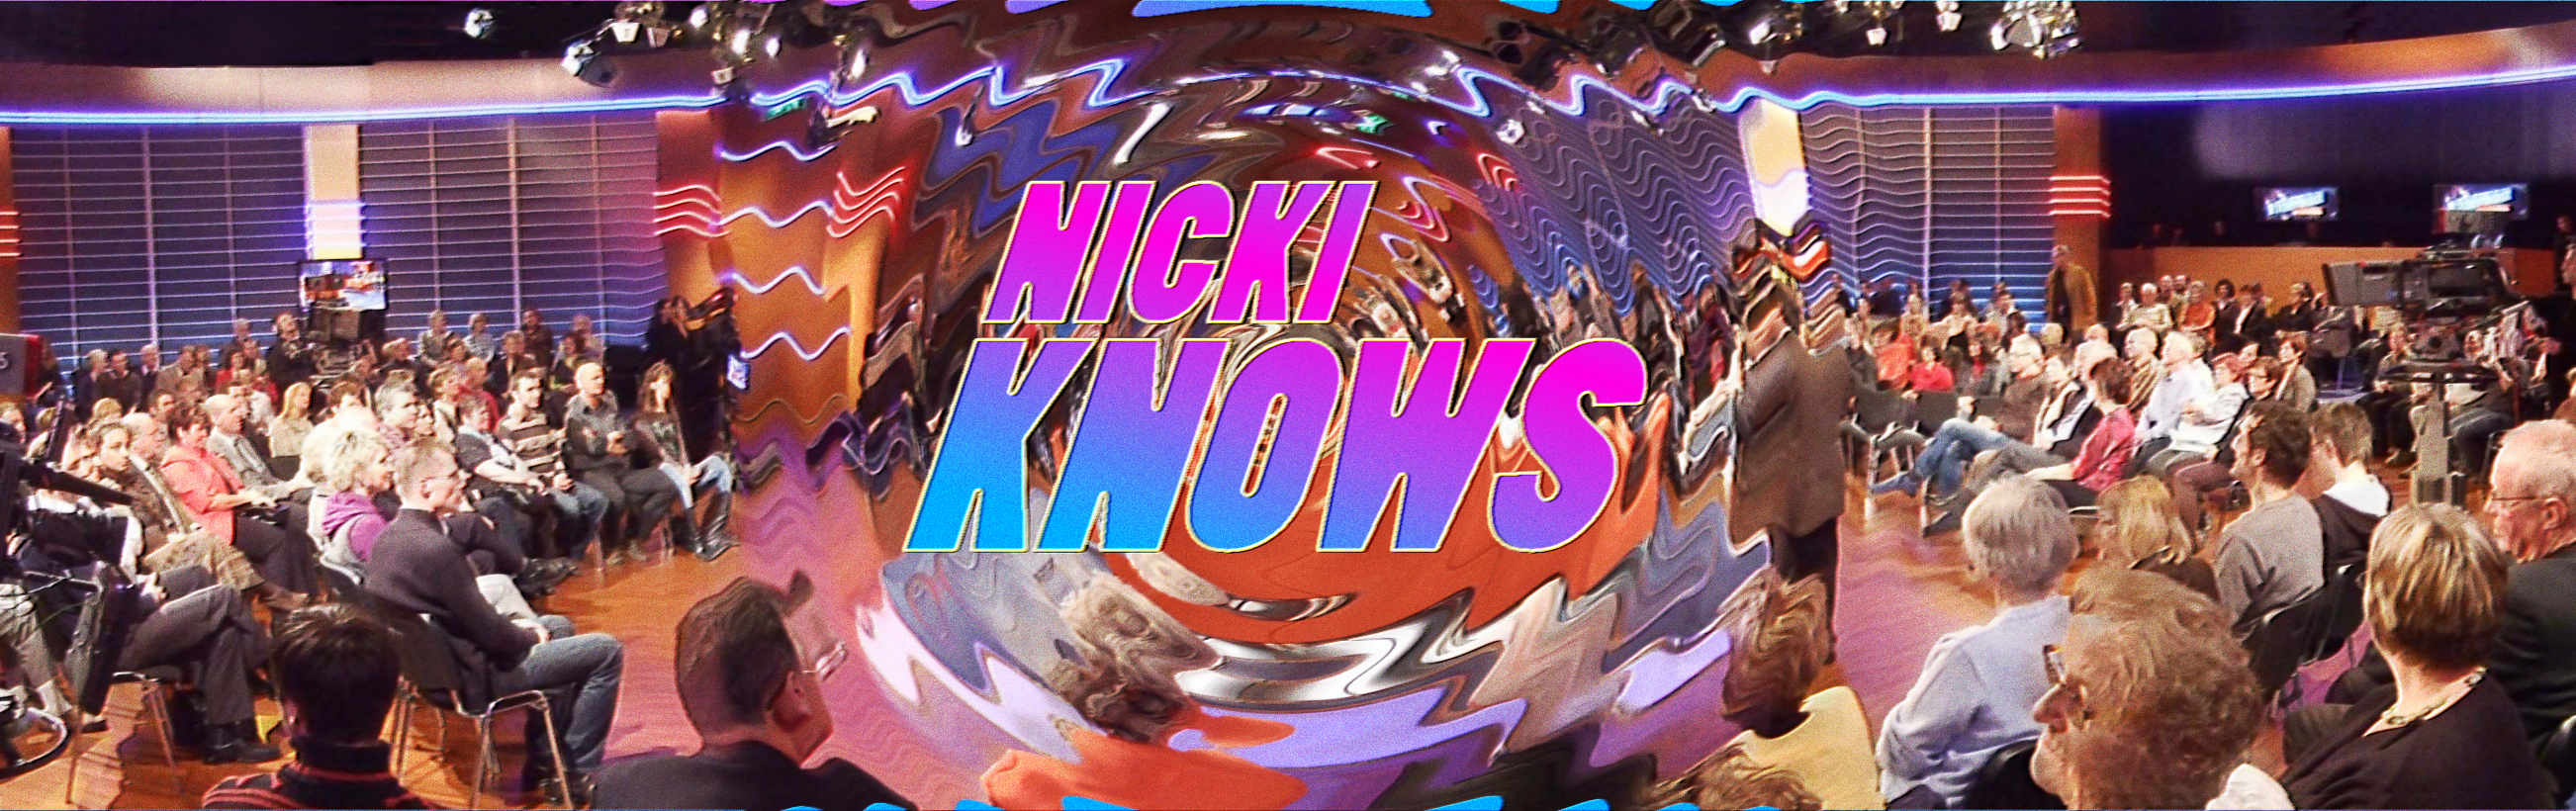 NICKIKNOWS.png